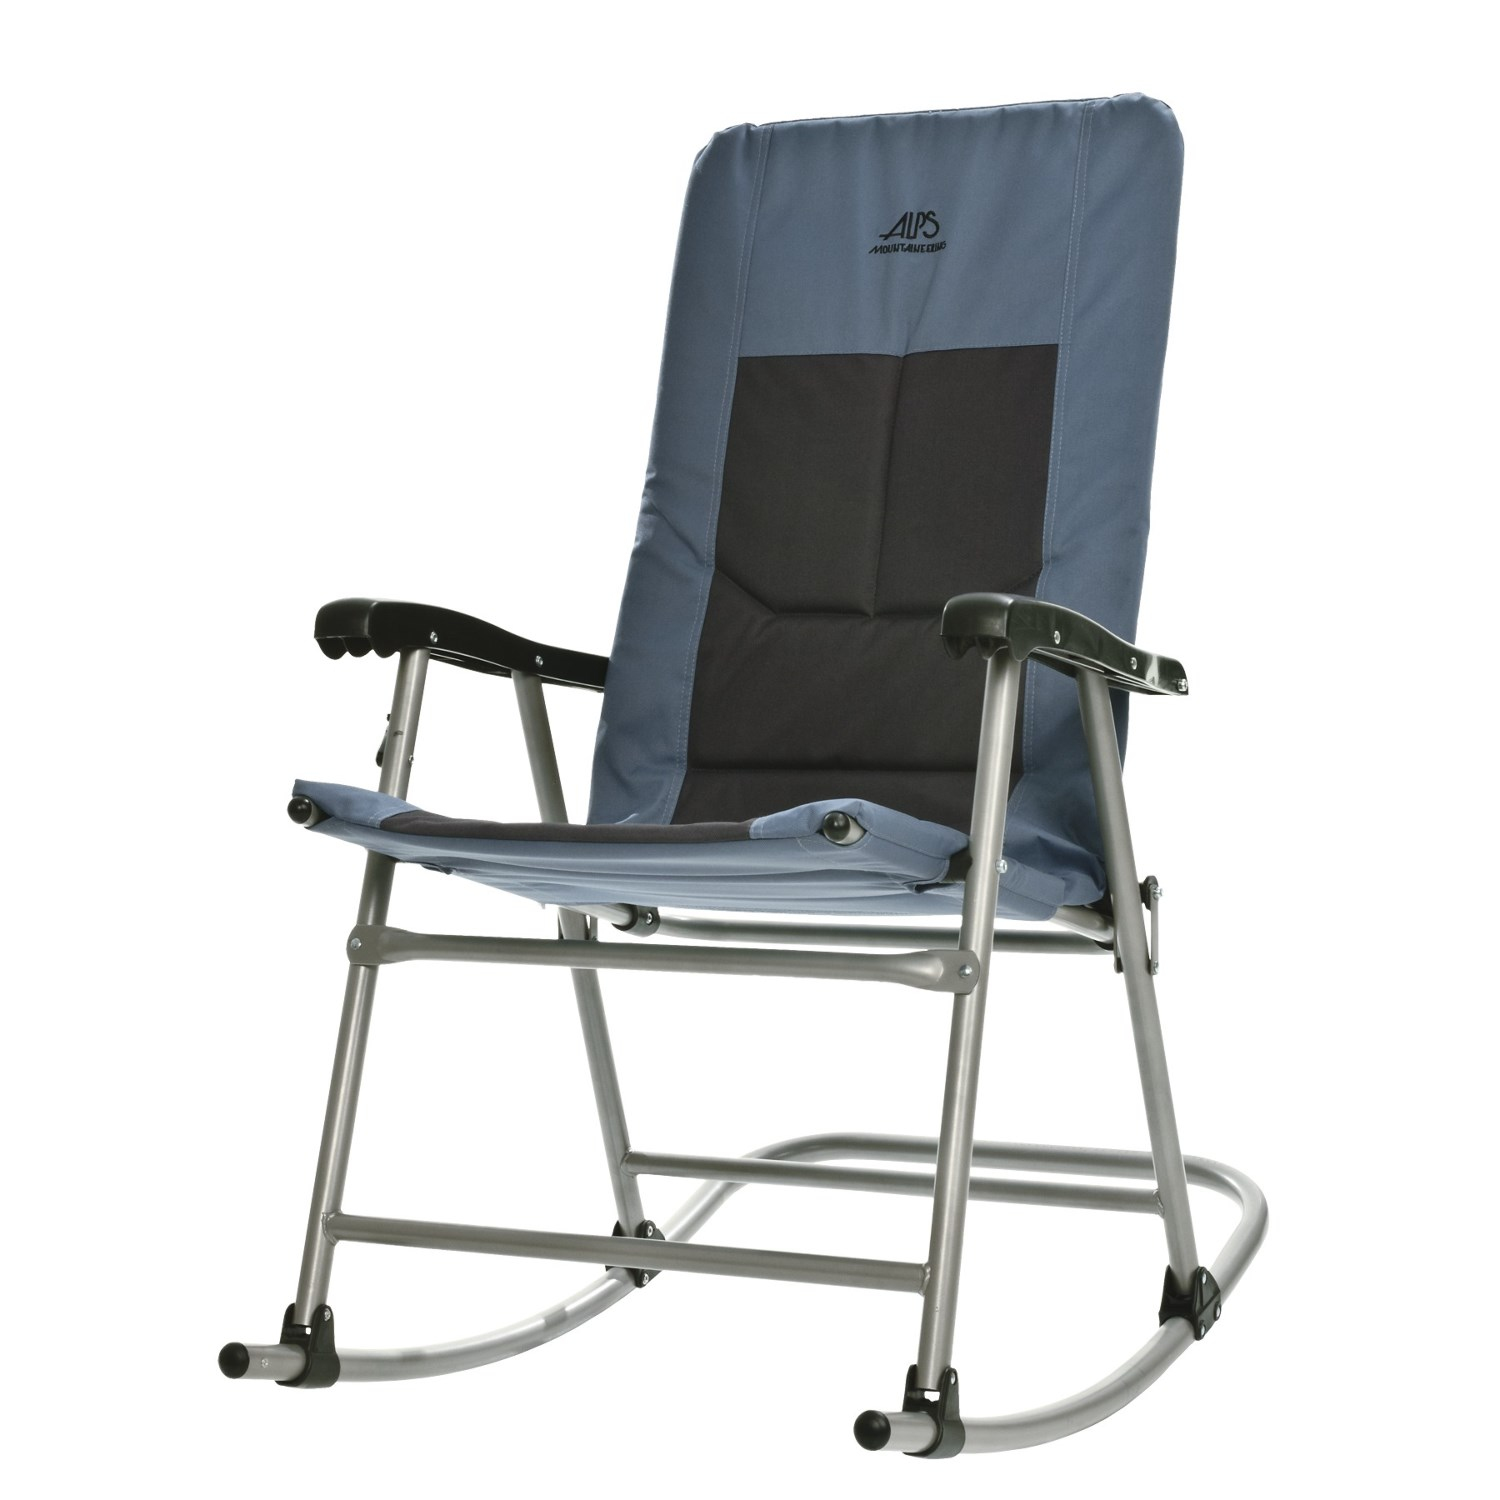 rocking bag chair steel dining table abzurdah undiariodiferente camping couch images 2016